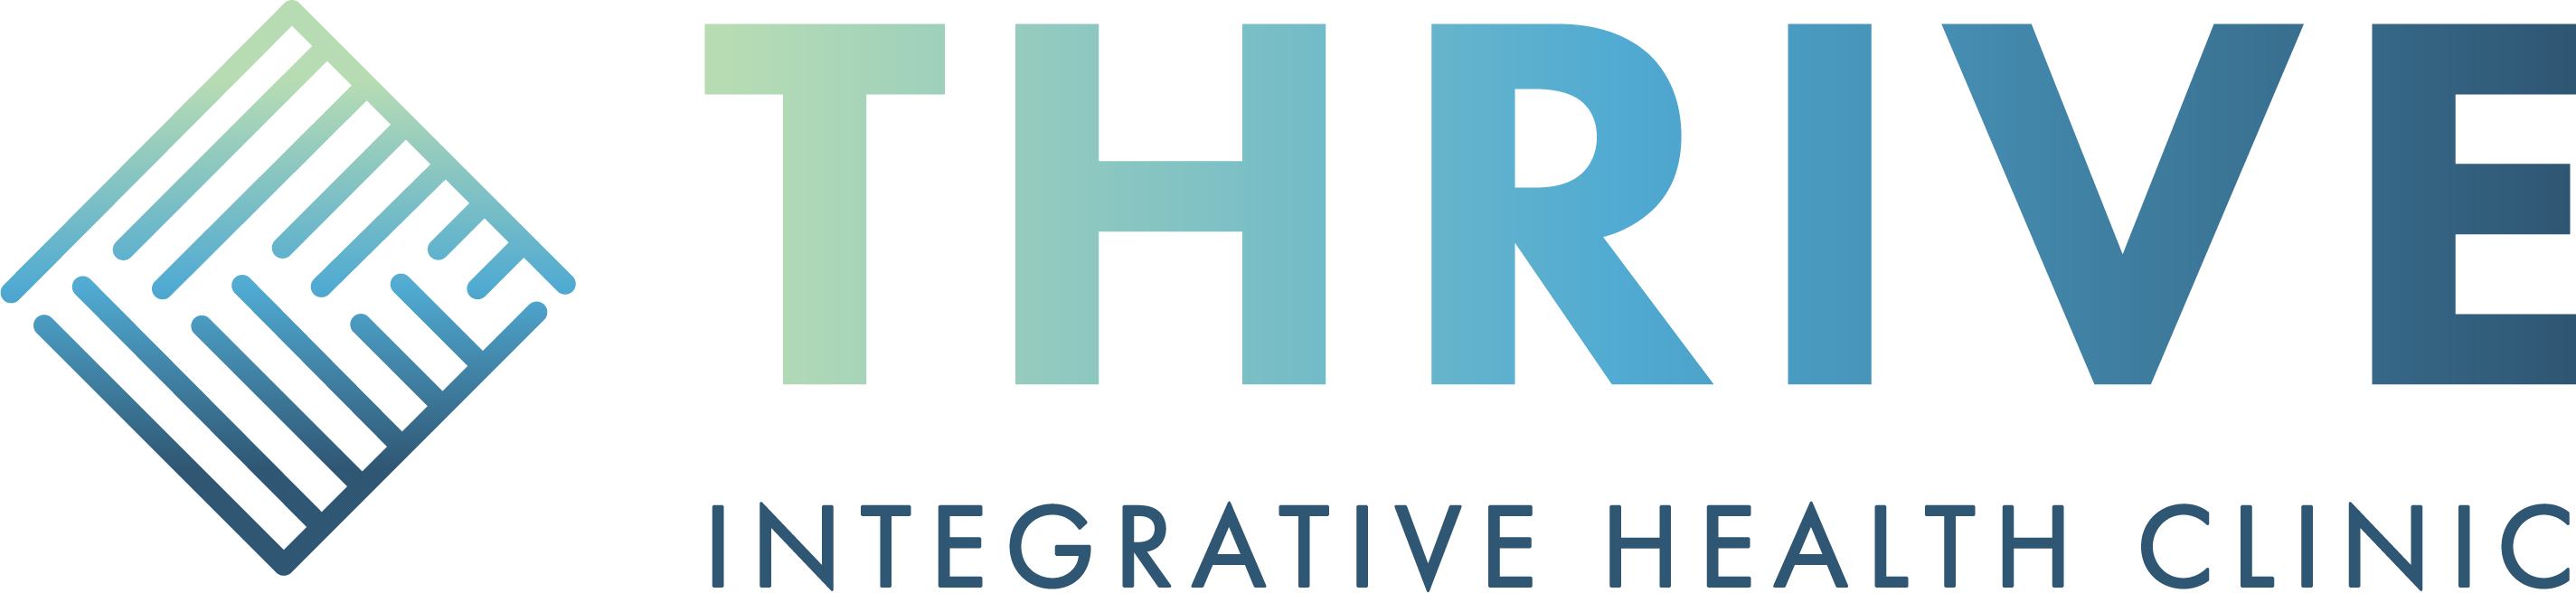 Thrive Skilled Pediatric Care is located at East Via De Ventura, Suite Scottsdale, AZ and can be contacted via phone number () Home Health Services being offerred by Thrive Skilled Pediatric Care includes nursing, physical therapy.